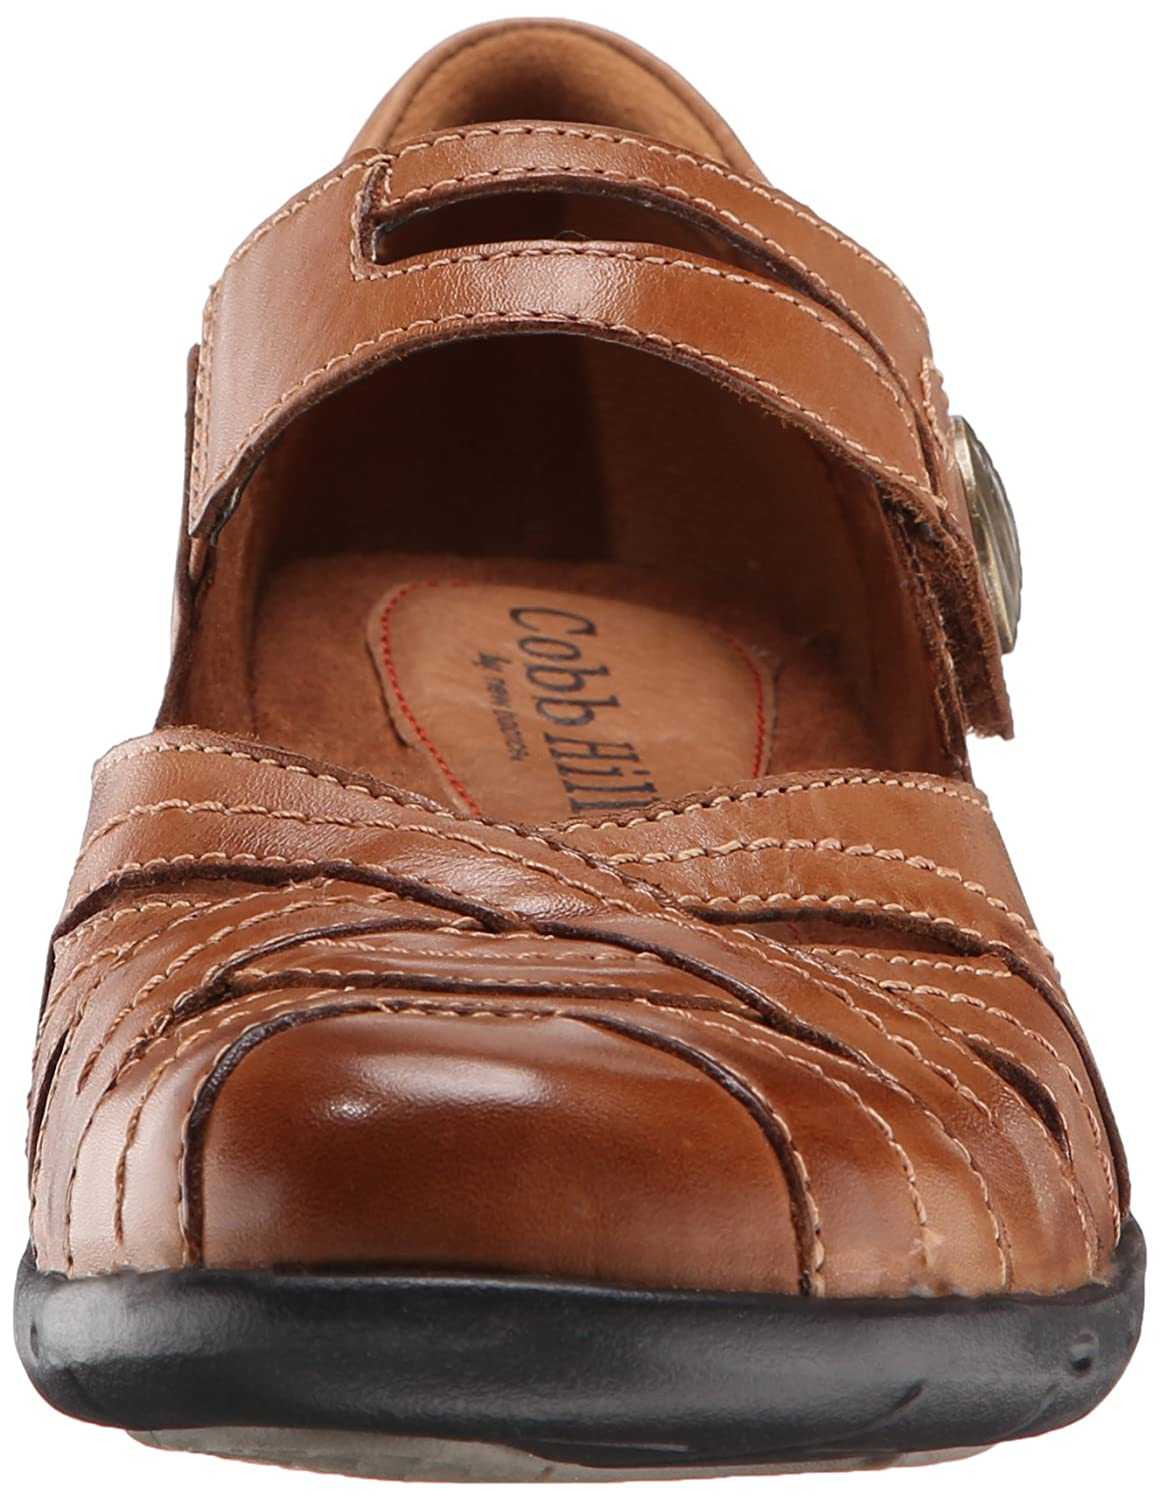 Cobb Hill Rockport Women's Parker C/D CH Flat B00M1P30MM 9 C/D Parker US|Tan d72f6c